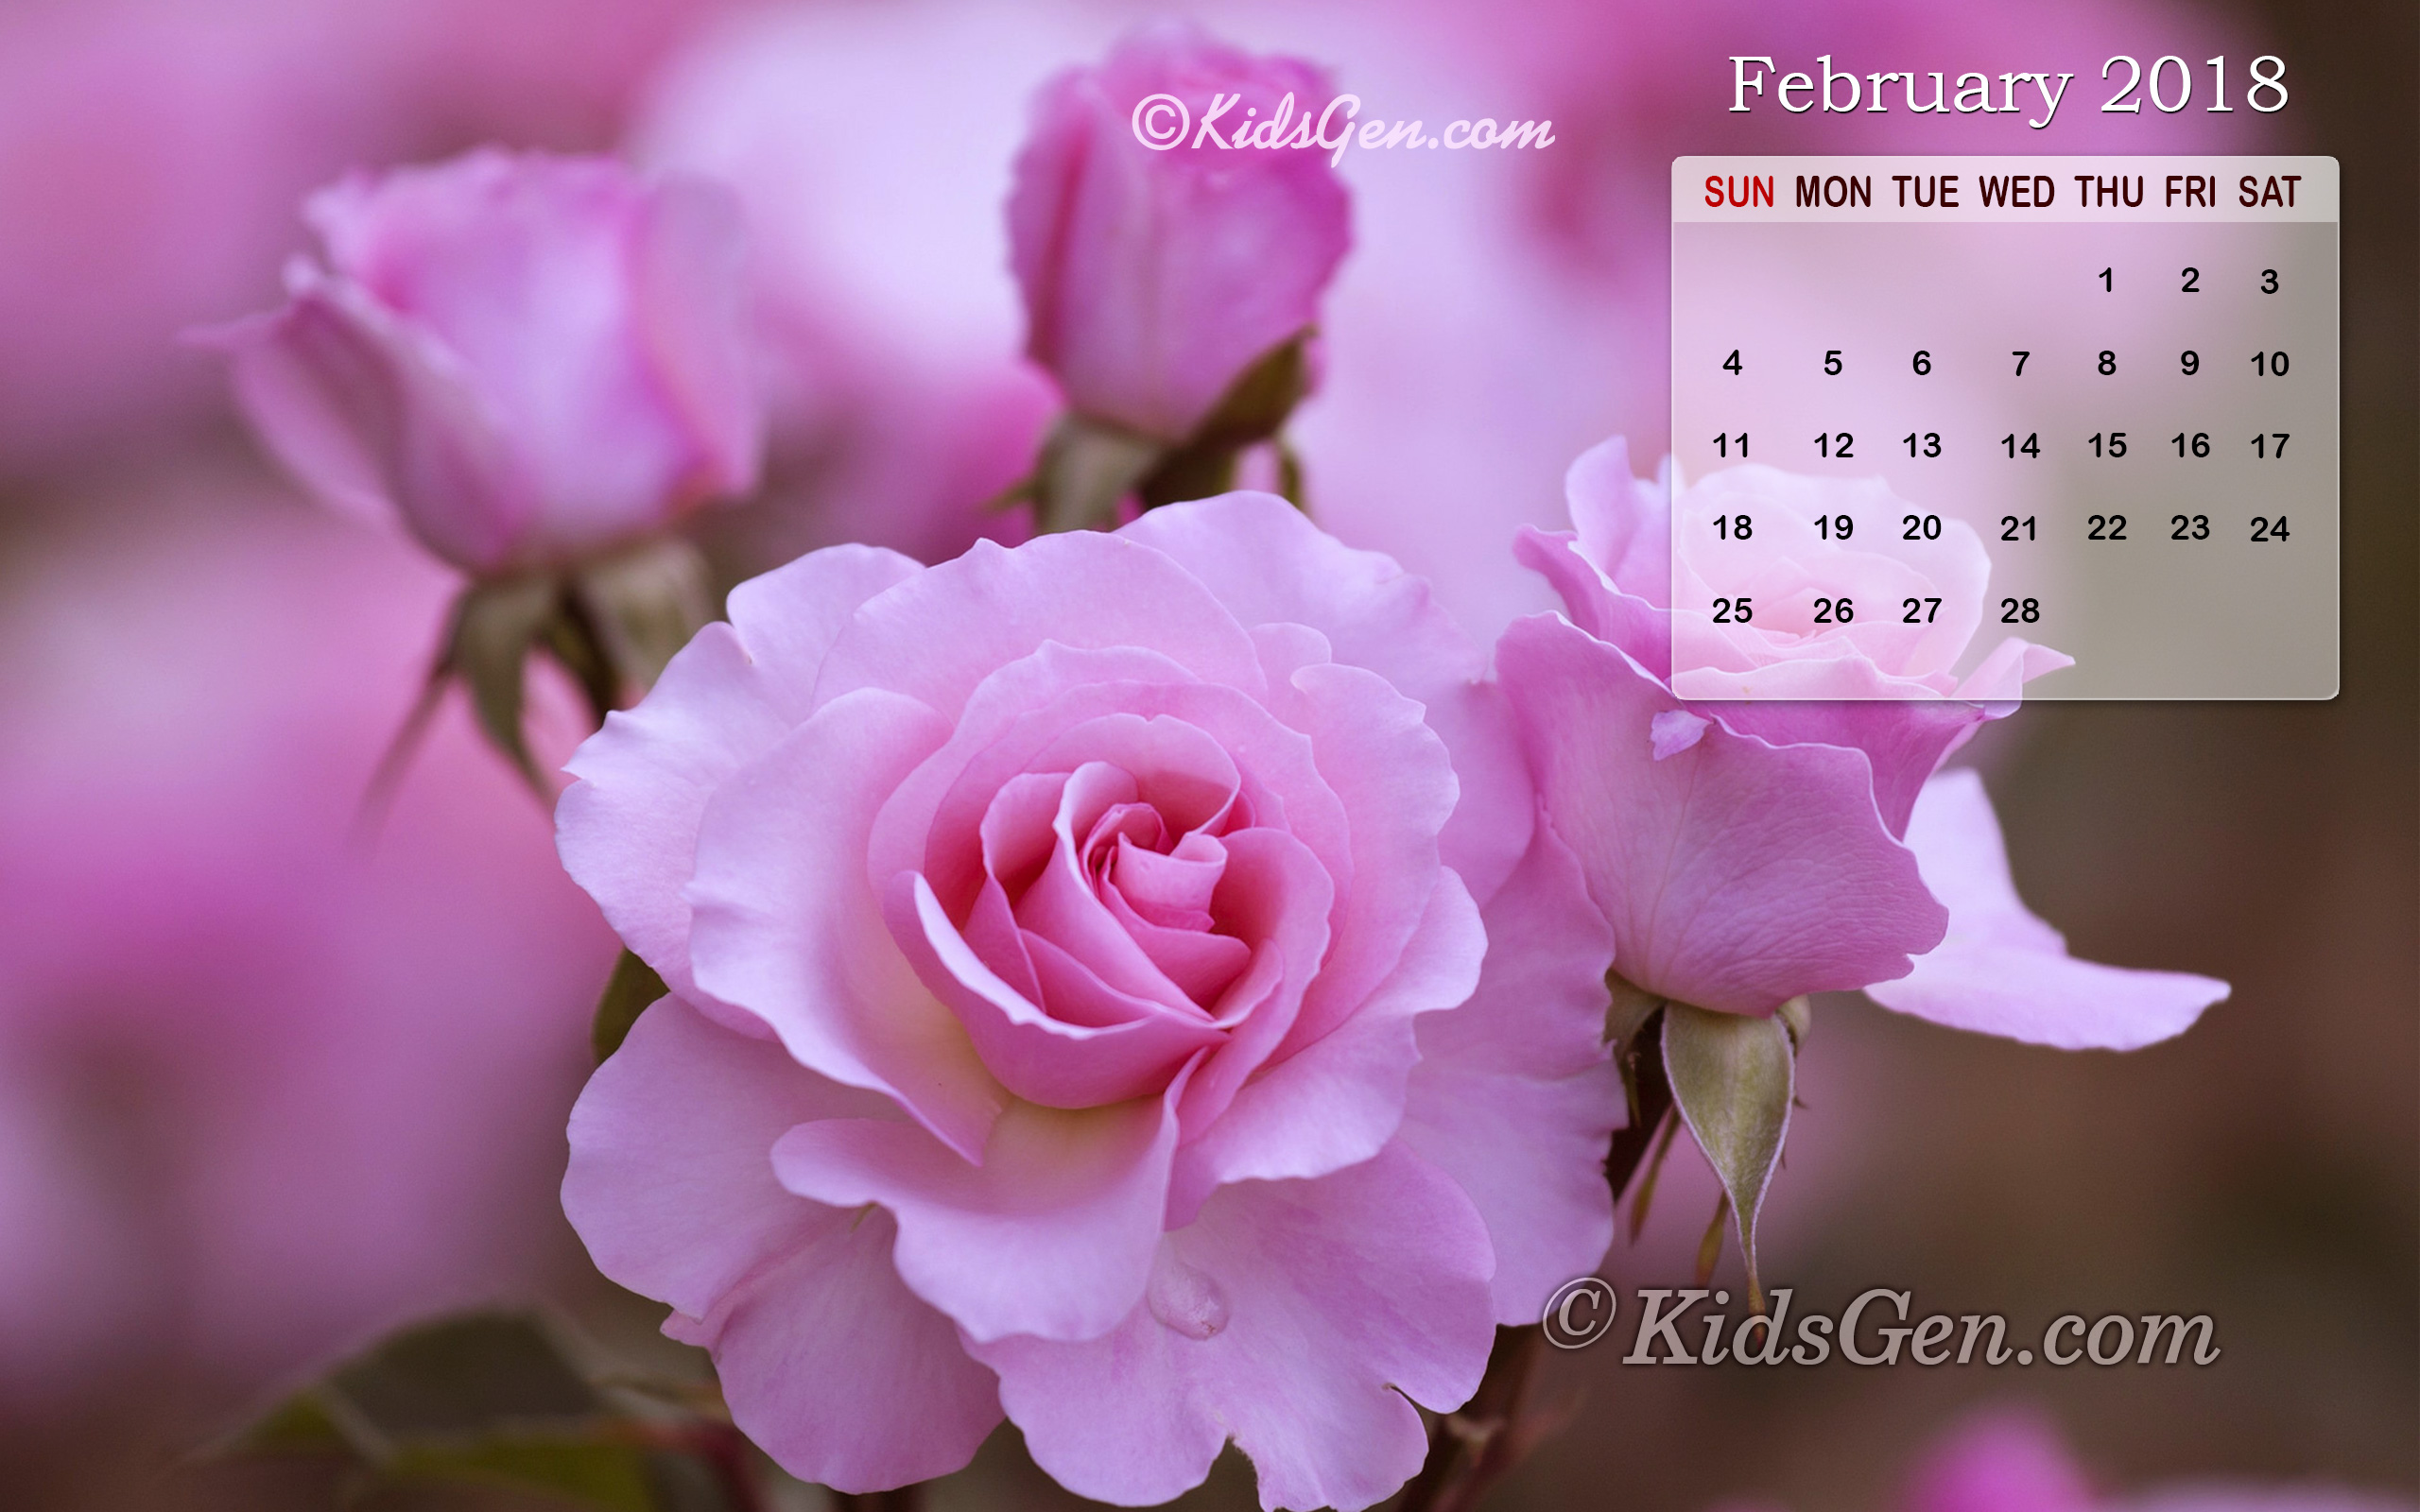 Calendar Wallpaper Of February 2018 Themed With Pink Roses